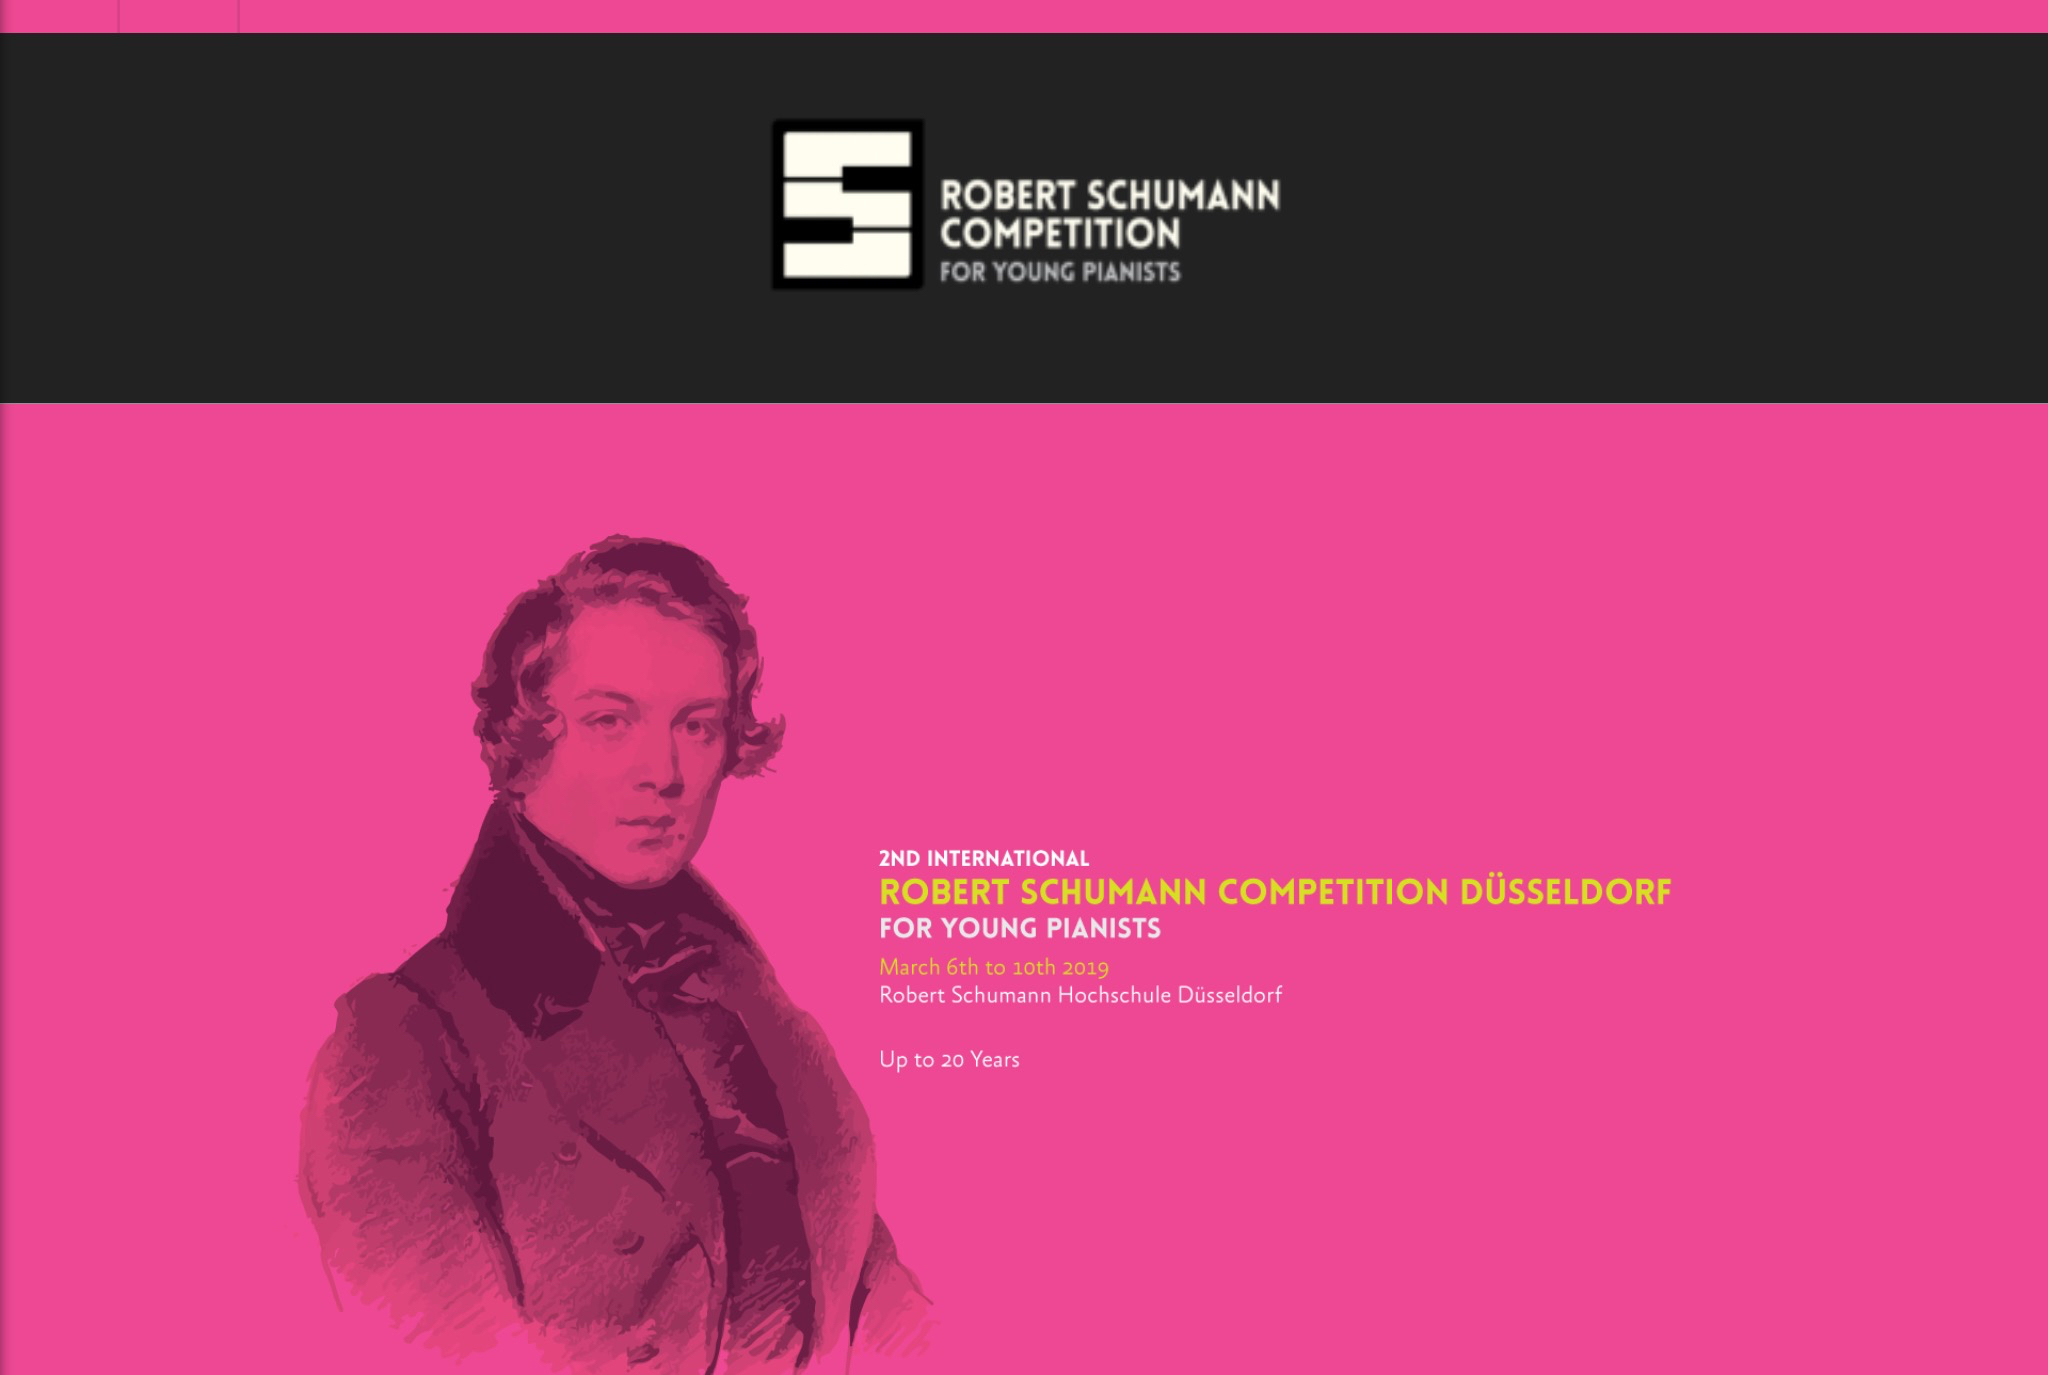 Robert Schumann Competition